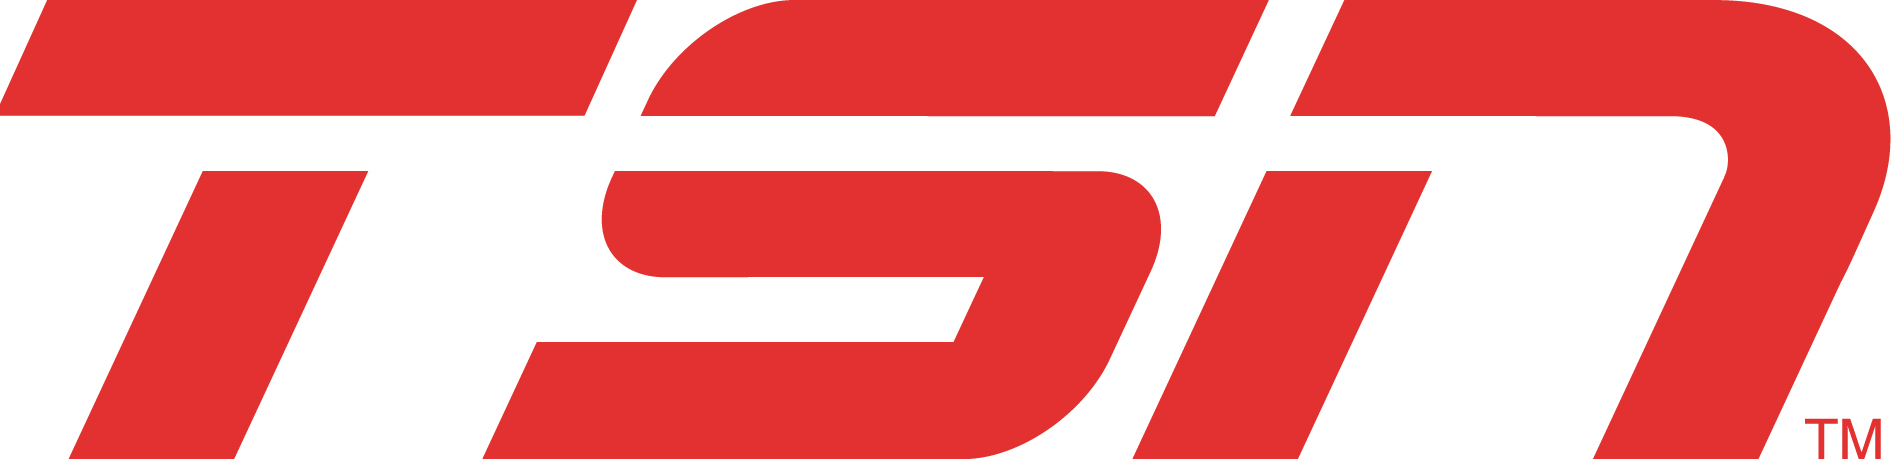 Tsn logo clipart picture freeuse stock Our national partners | Special Olympics Canada picture freeuse stock